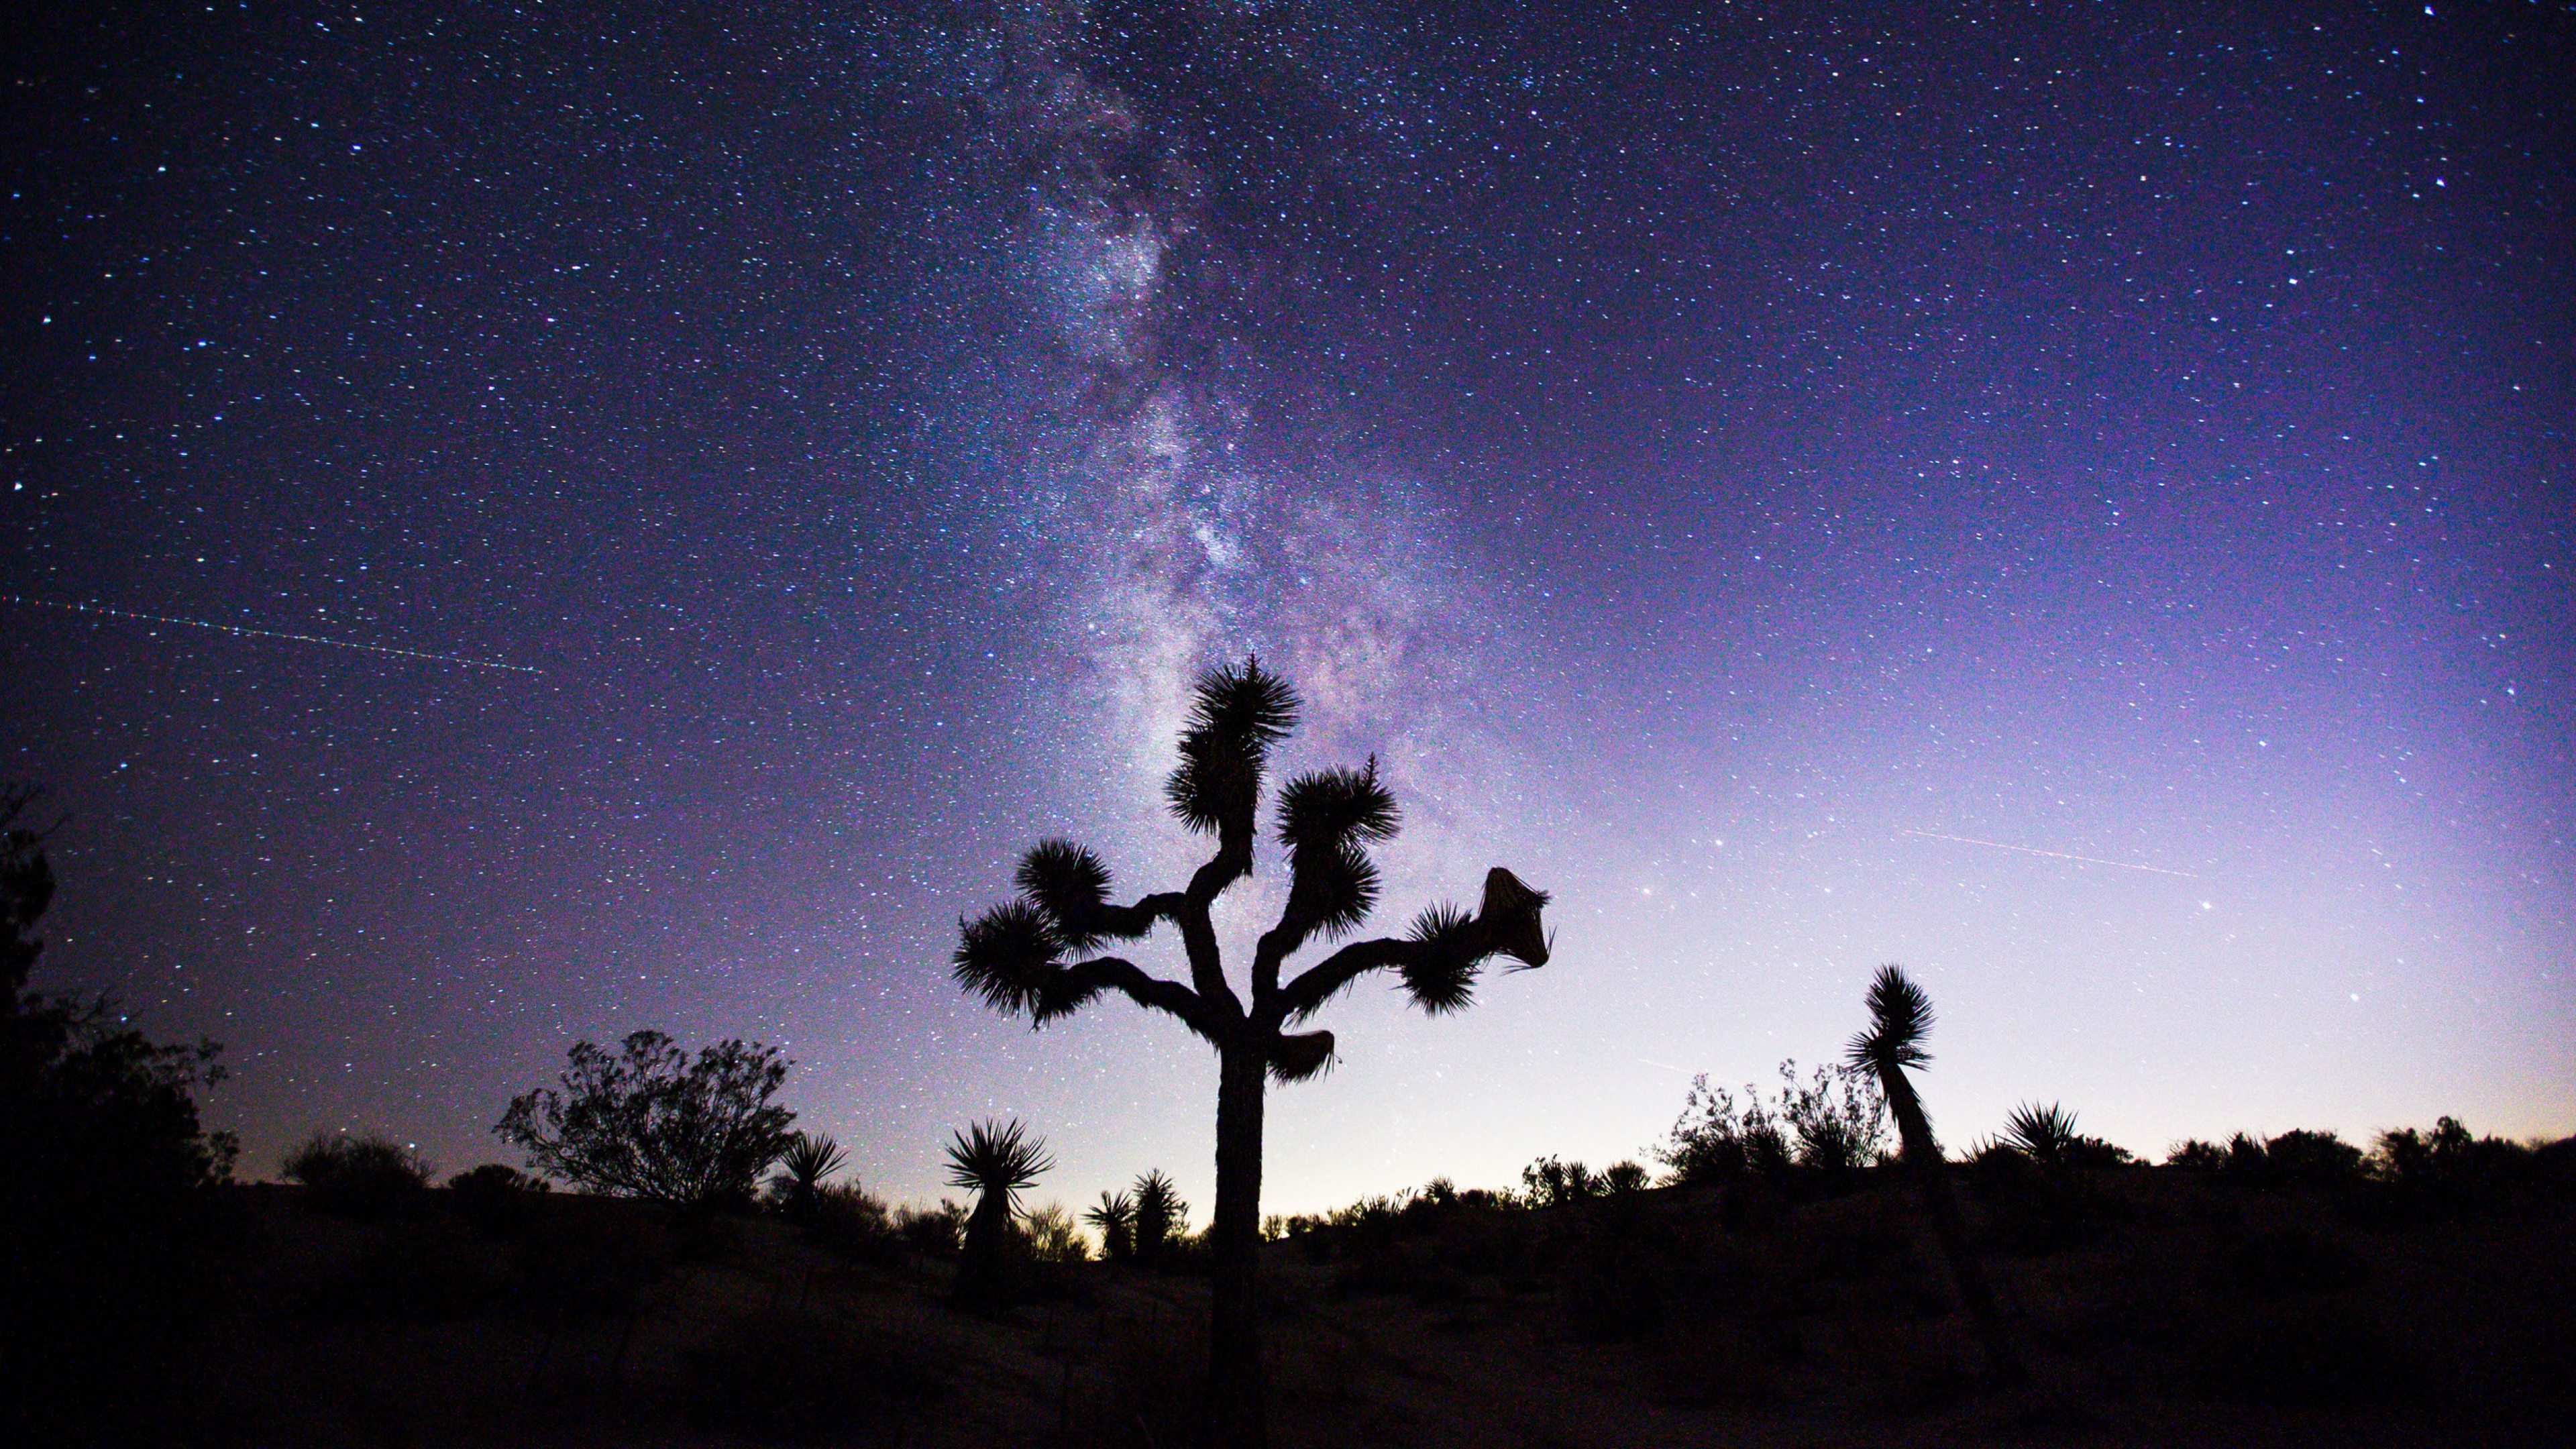 Milky Way behind the silhouette of a Joshua Tree